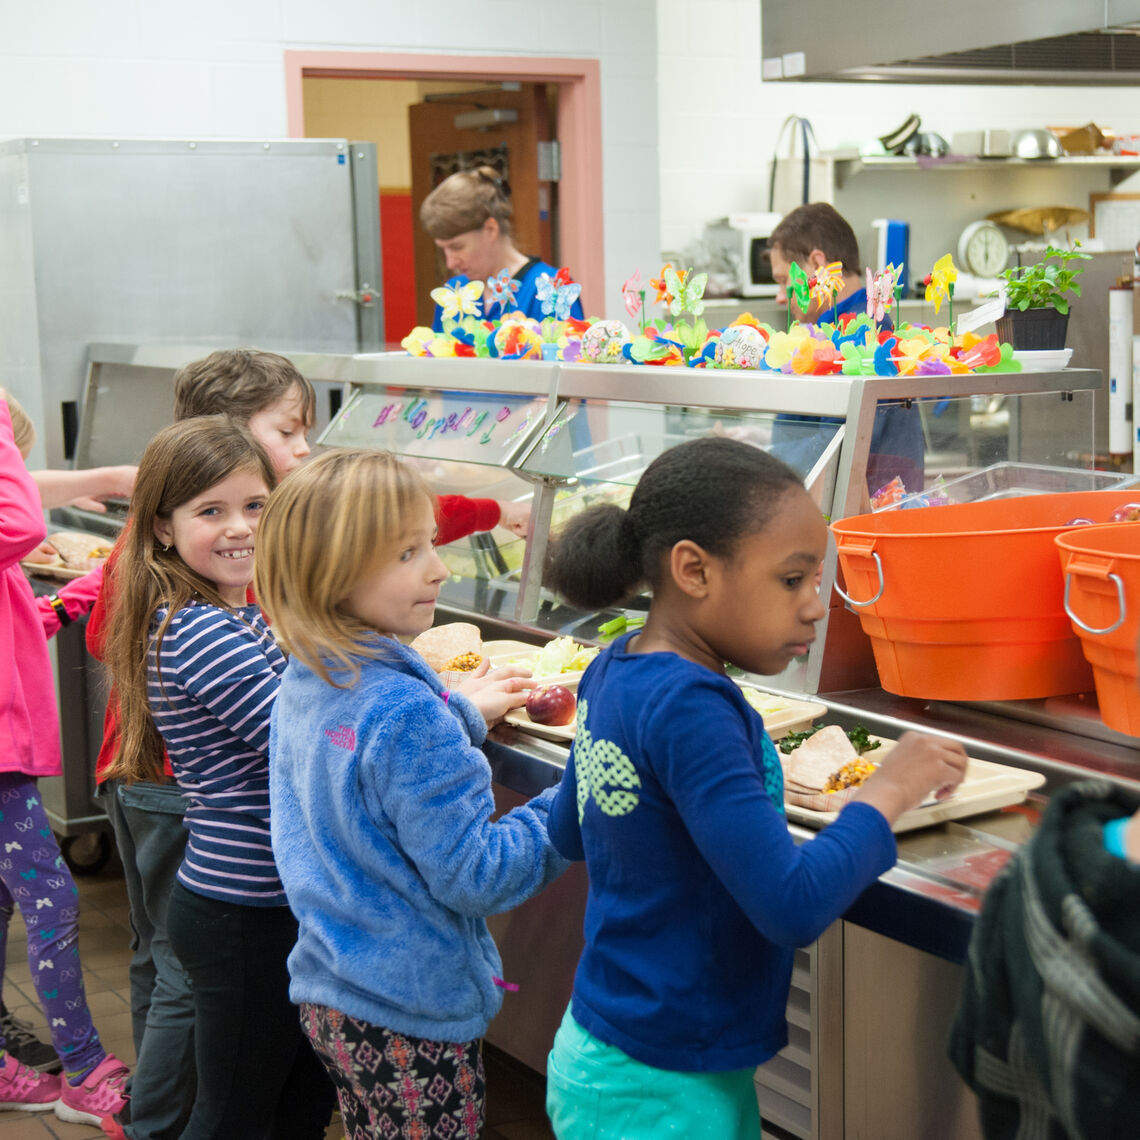 A group of students are lined up to get school lunch